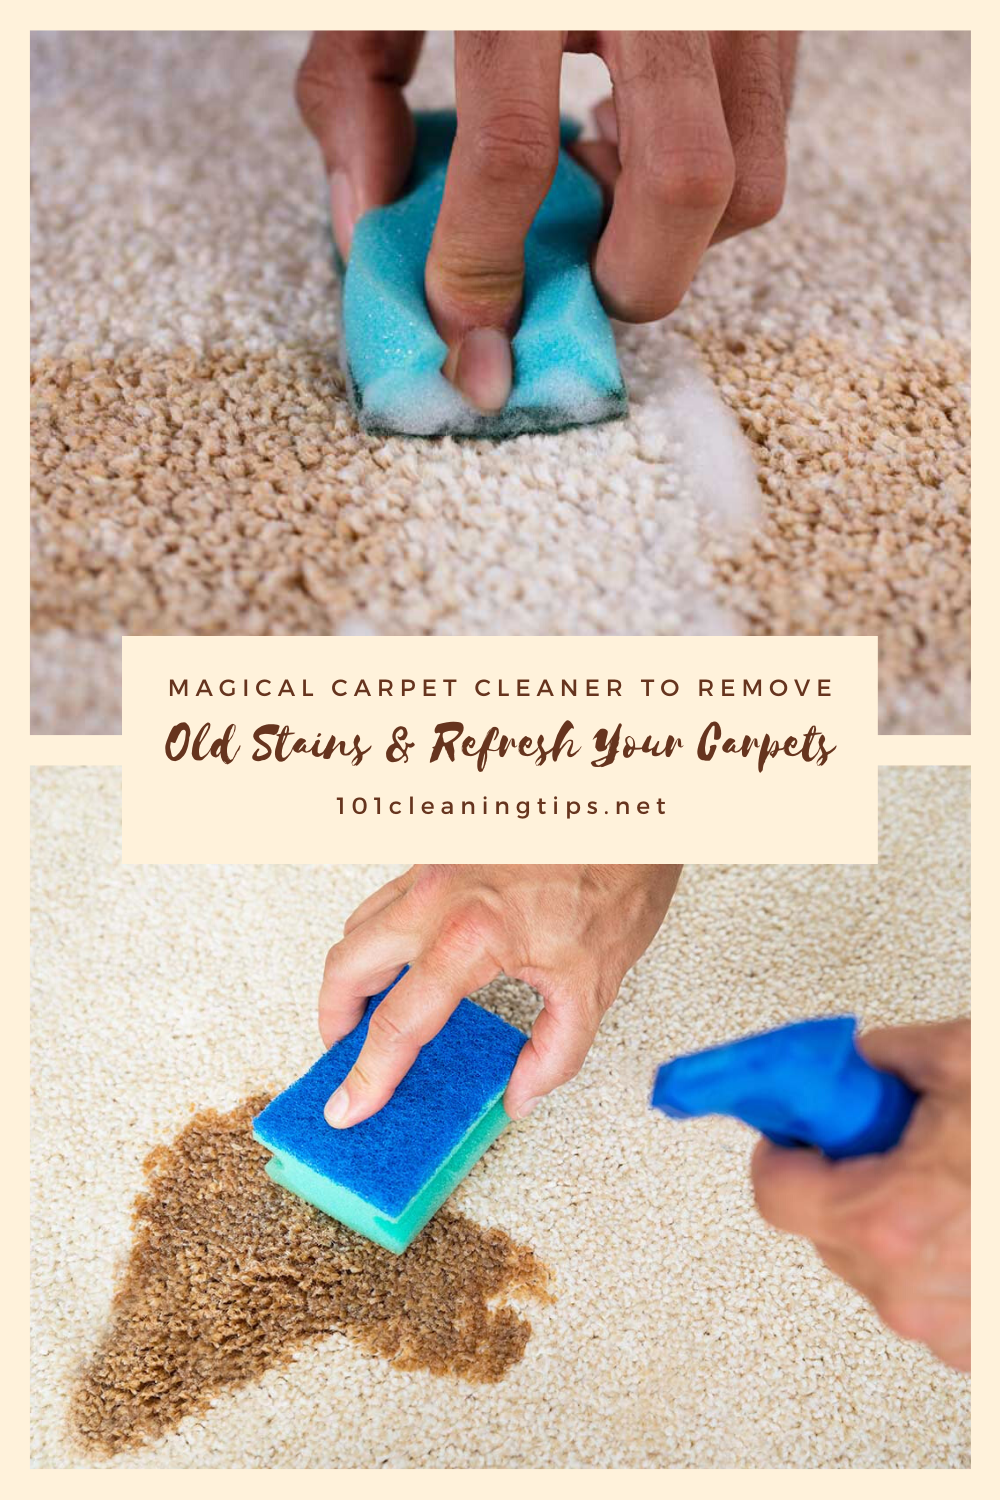 Magical Carpet Cleaner To Remove Old Stains And Refresh Your Carpets 101cleaningtips Net Stain Remover Carpet Carpet Cleaners Diy Carpet Stain Remover